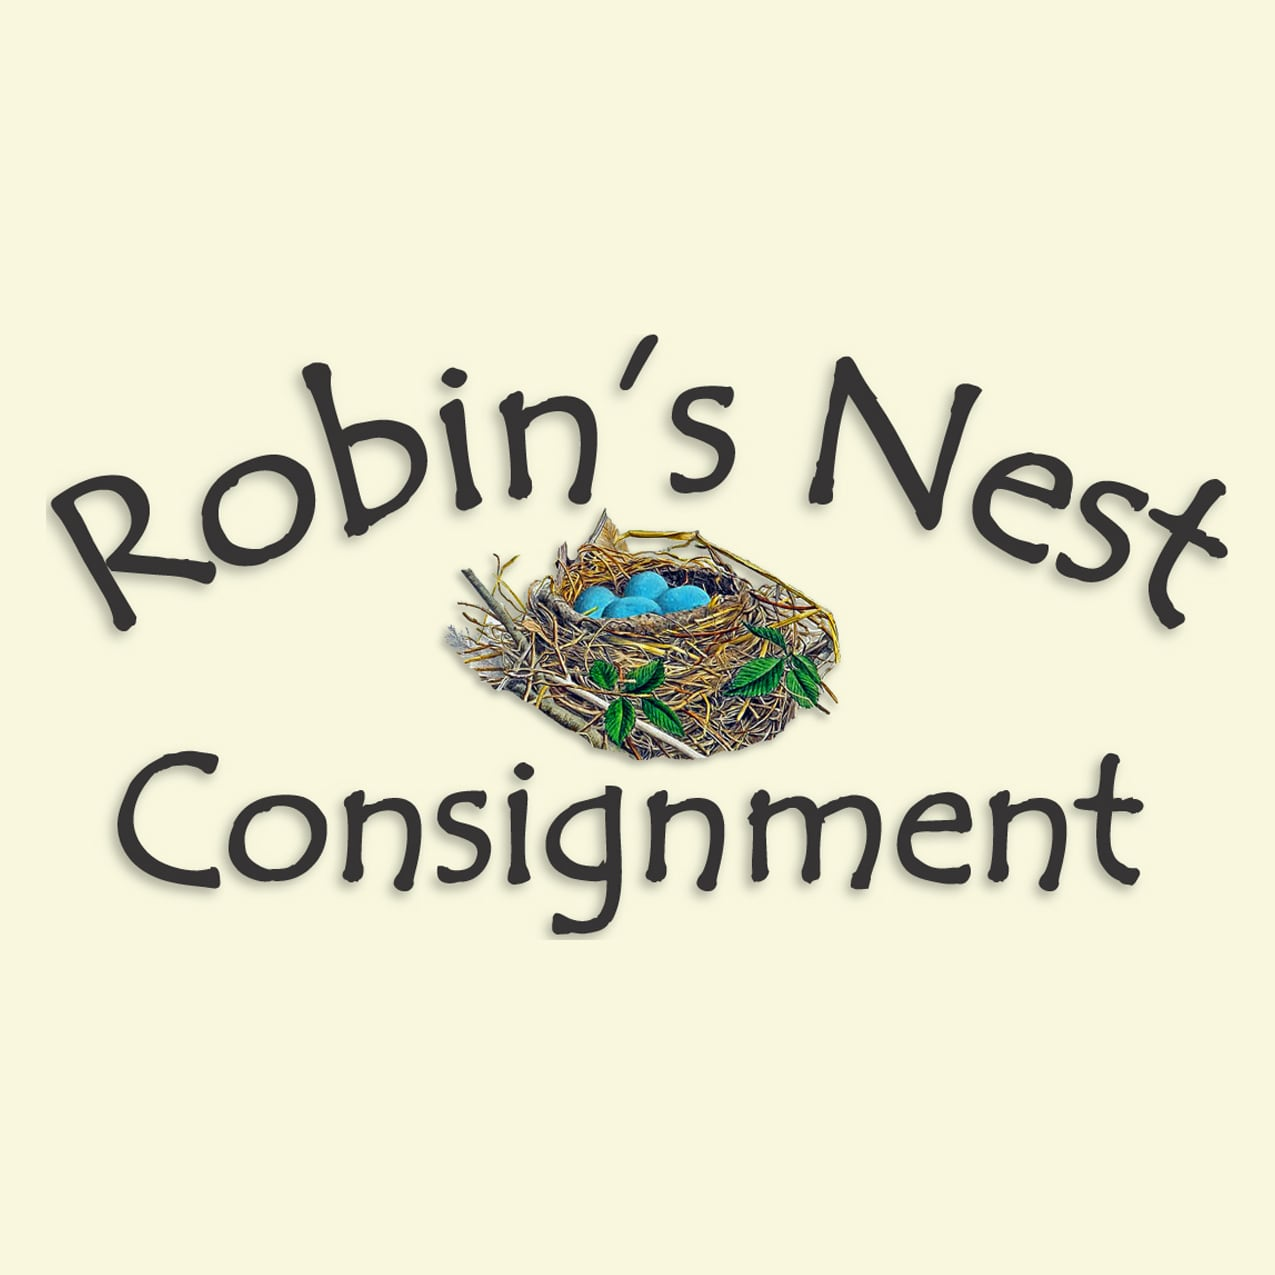 Robin's Nest Consignment